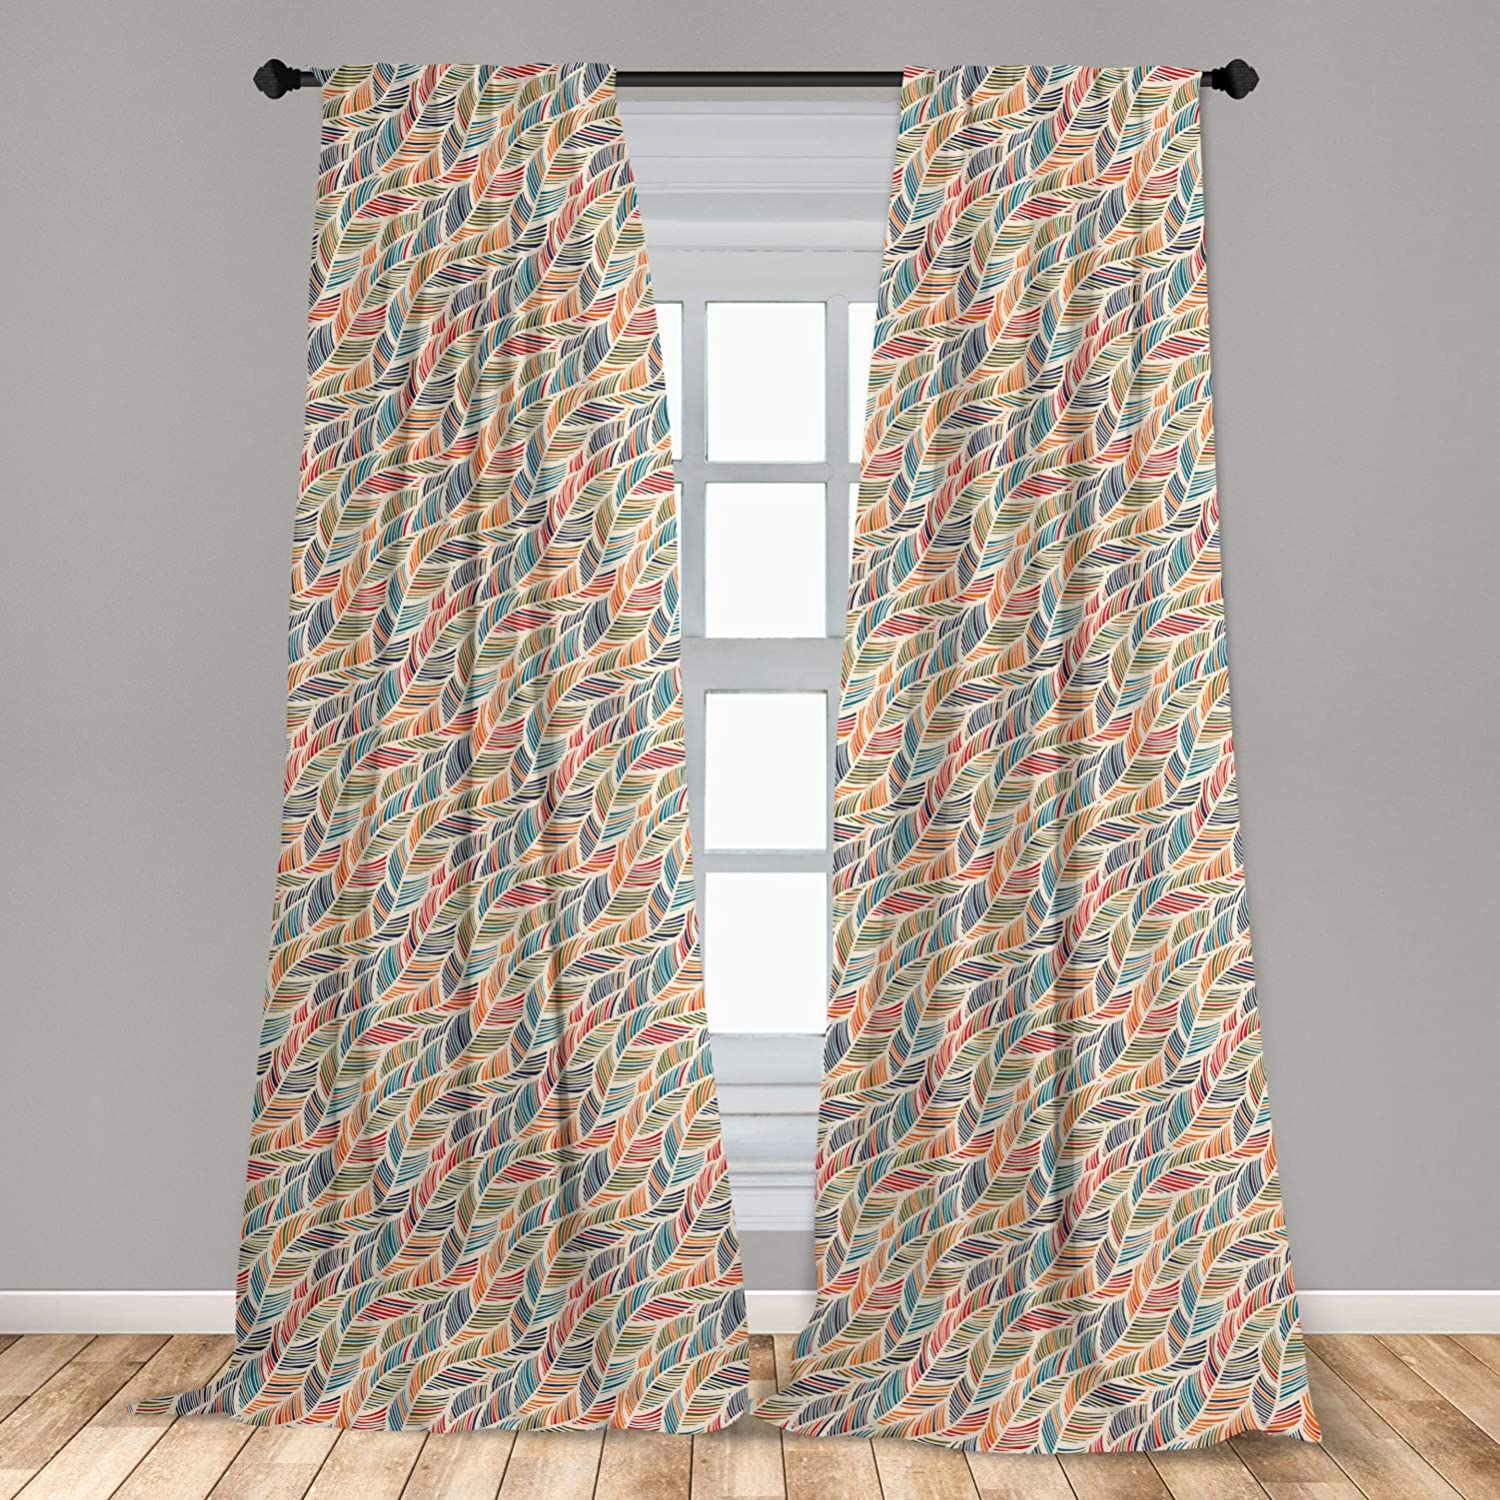 Ambesonne Boho Curtains, Abstract Feather Wave Pattern with Retro Look and Colorful Short Lines Curves, Window Treatments 2 Panel Set for Living Room Bedroom Decor, 56